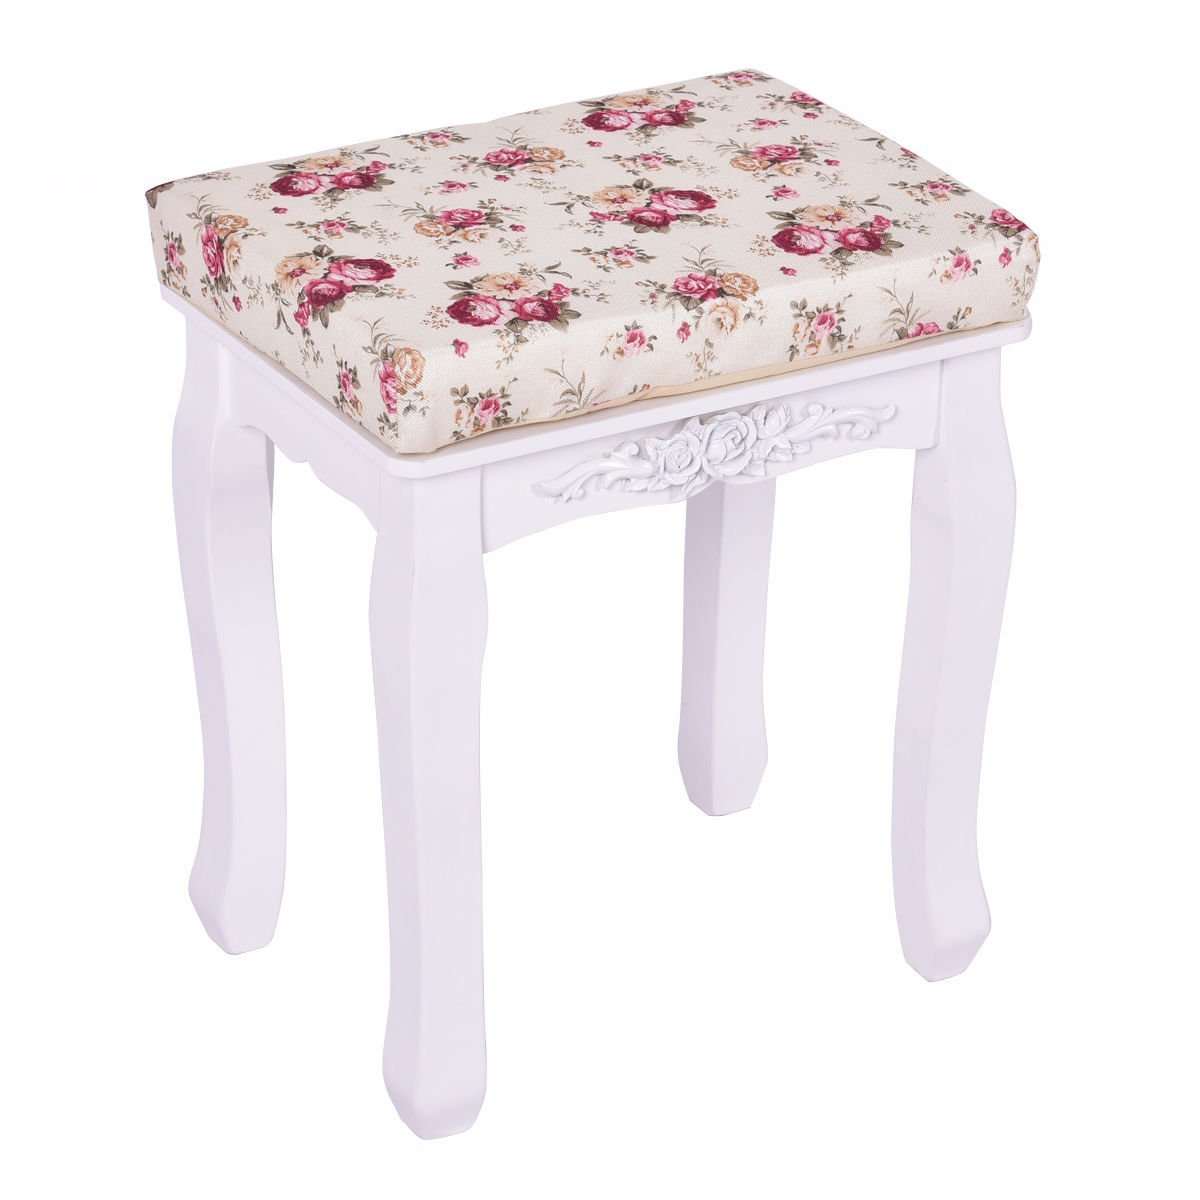 white vanity wood dressing stool padded chair makeup piano seat with cushion vanity seat task